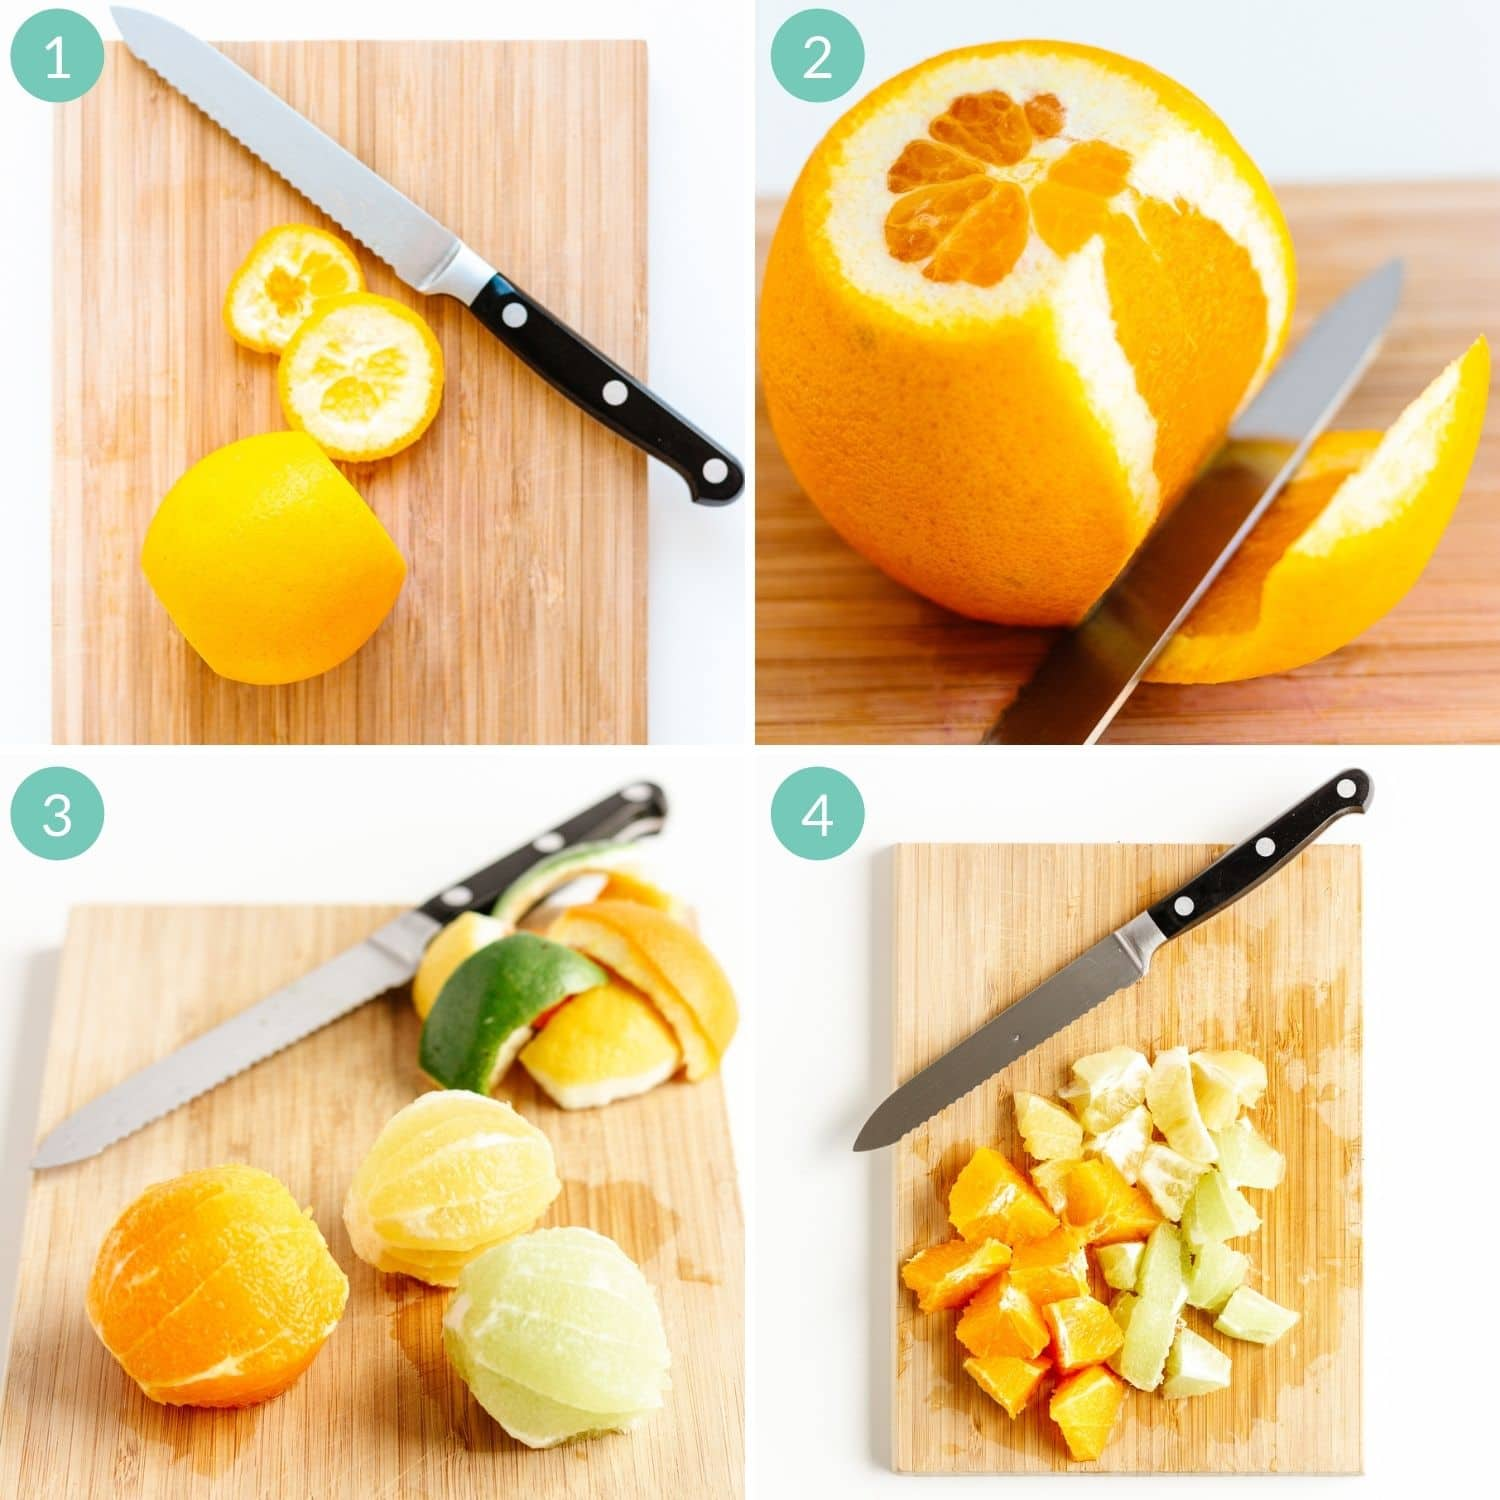 Step by step photo collage showing how to de-pith citrus.